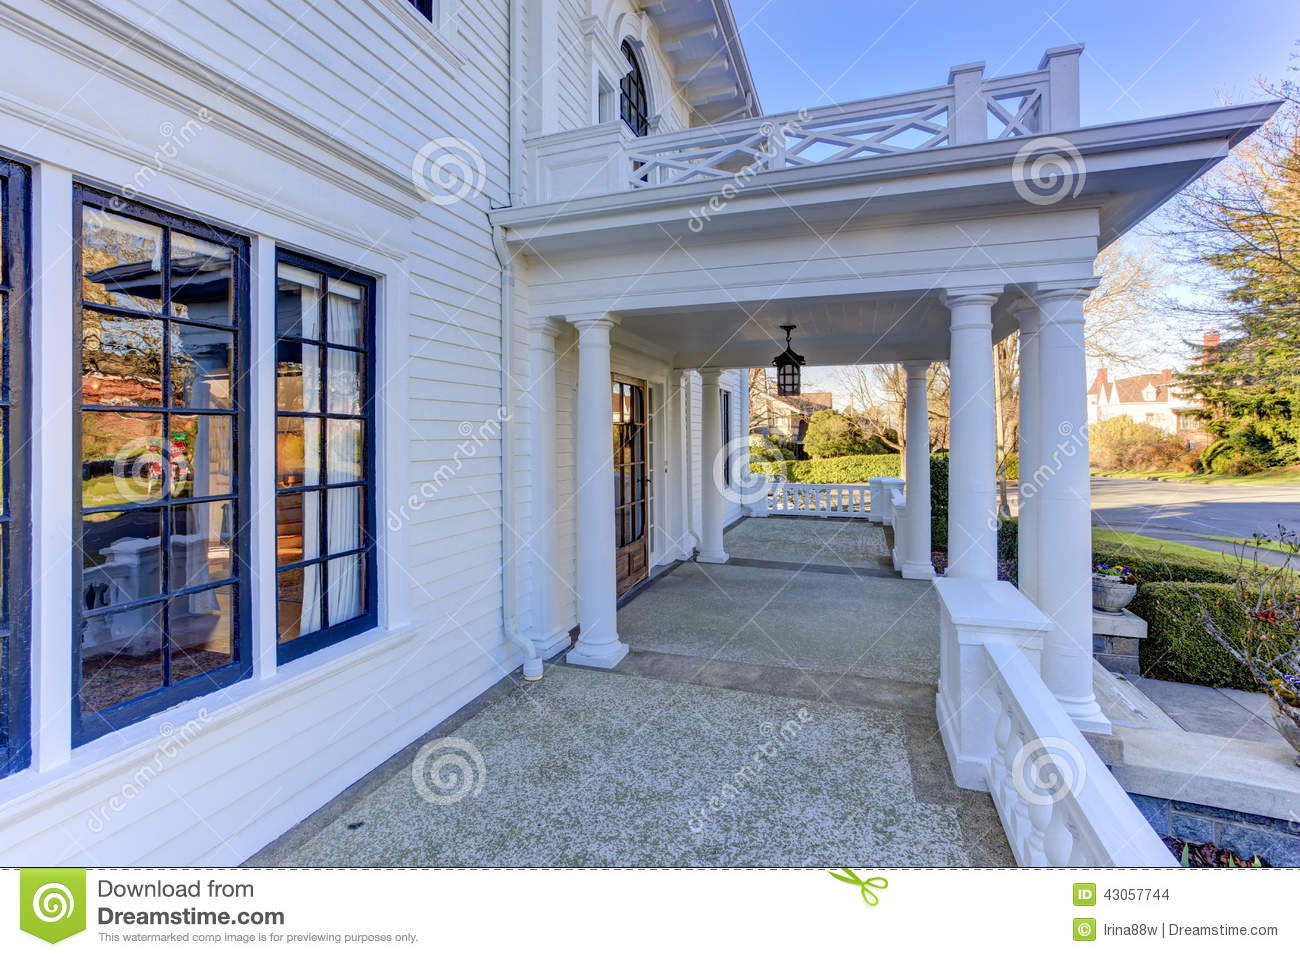 Superior Luxury American House Entrance Porch Stock Photo   Image Of Outdoor,  Window: 43057744